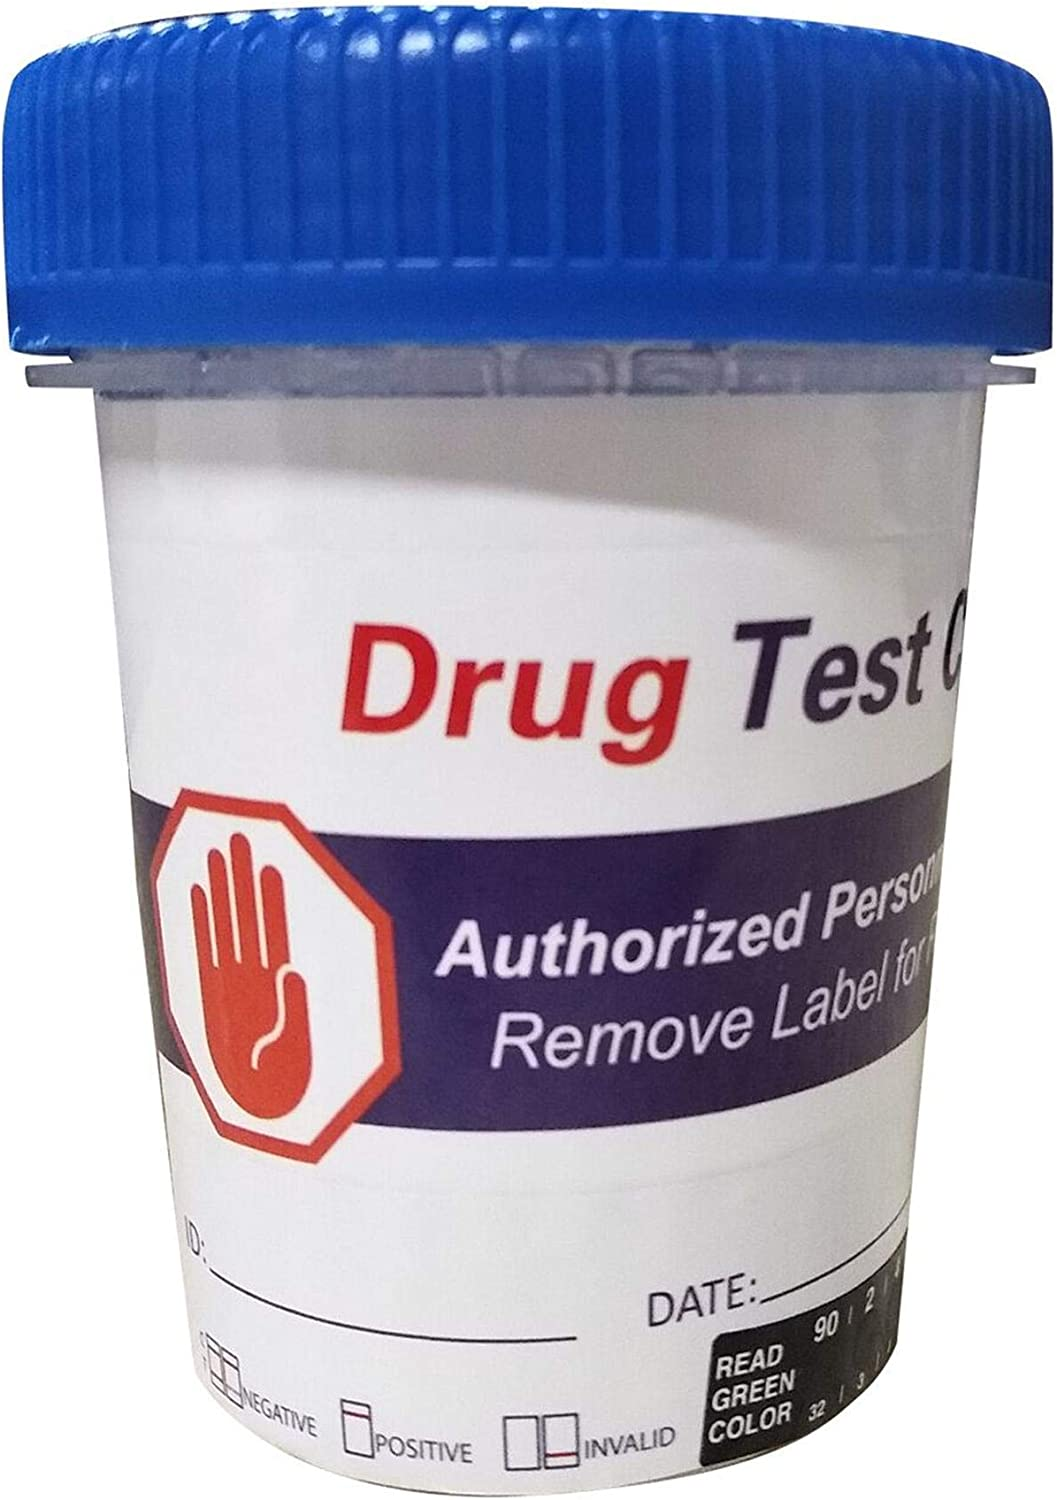 5 Dallas Mall Tests Magenta™ 12 Panel Drug Test 2021new shipping free shipping Cup Instant THC-COC-M